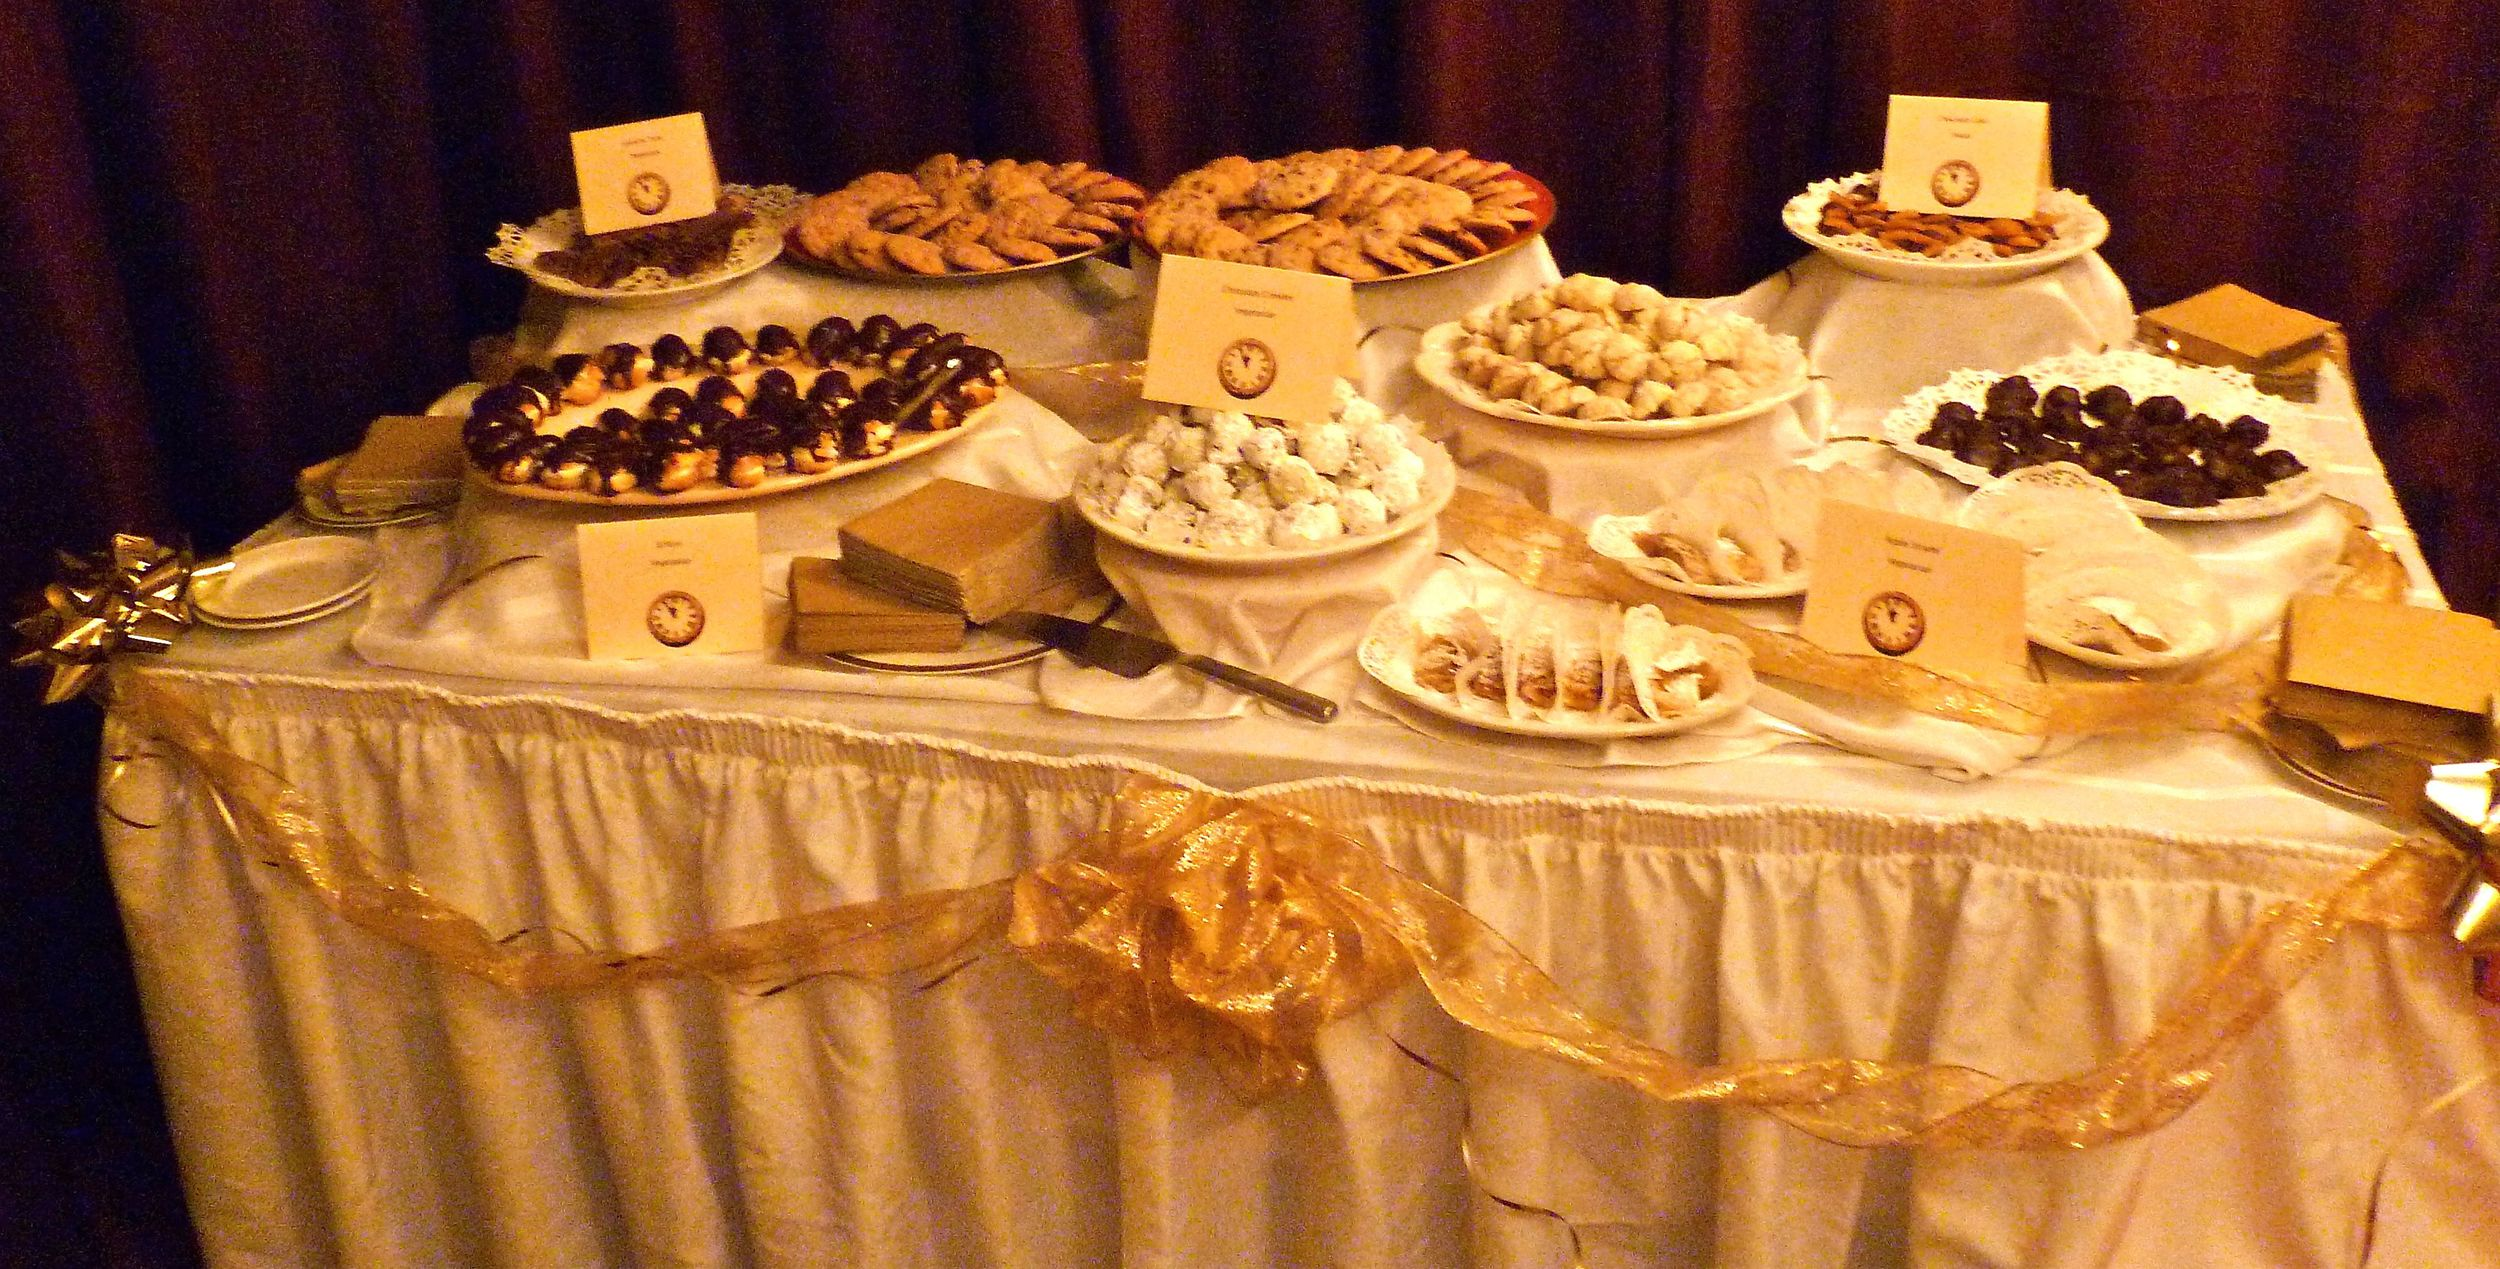 Eclairs, strudel, cakes, cookies and more